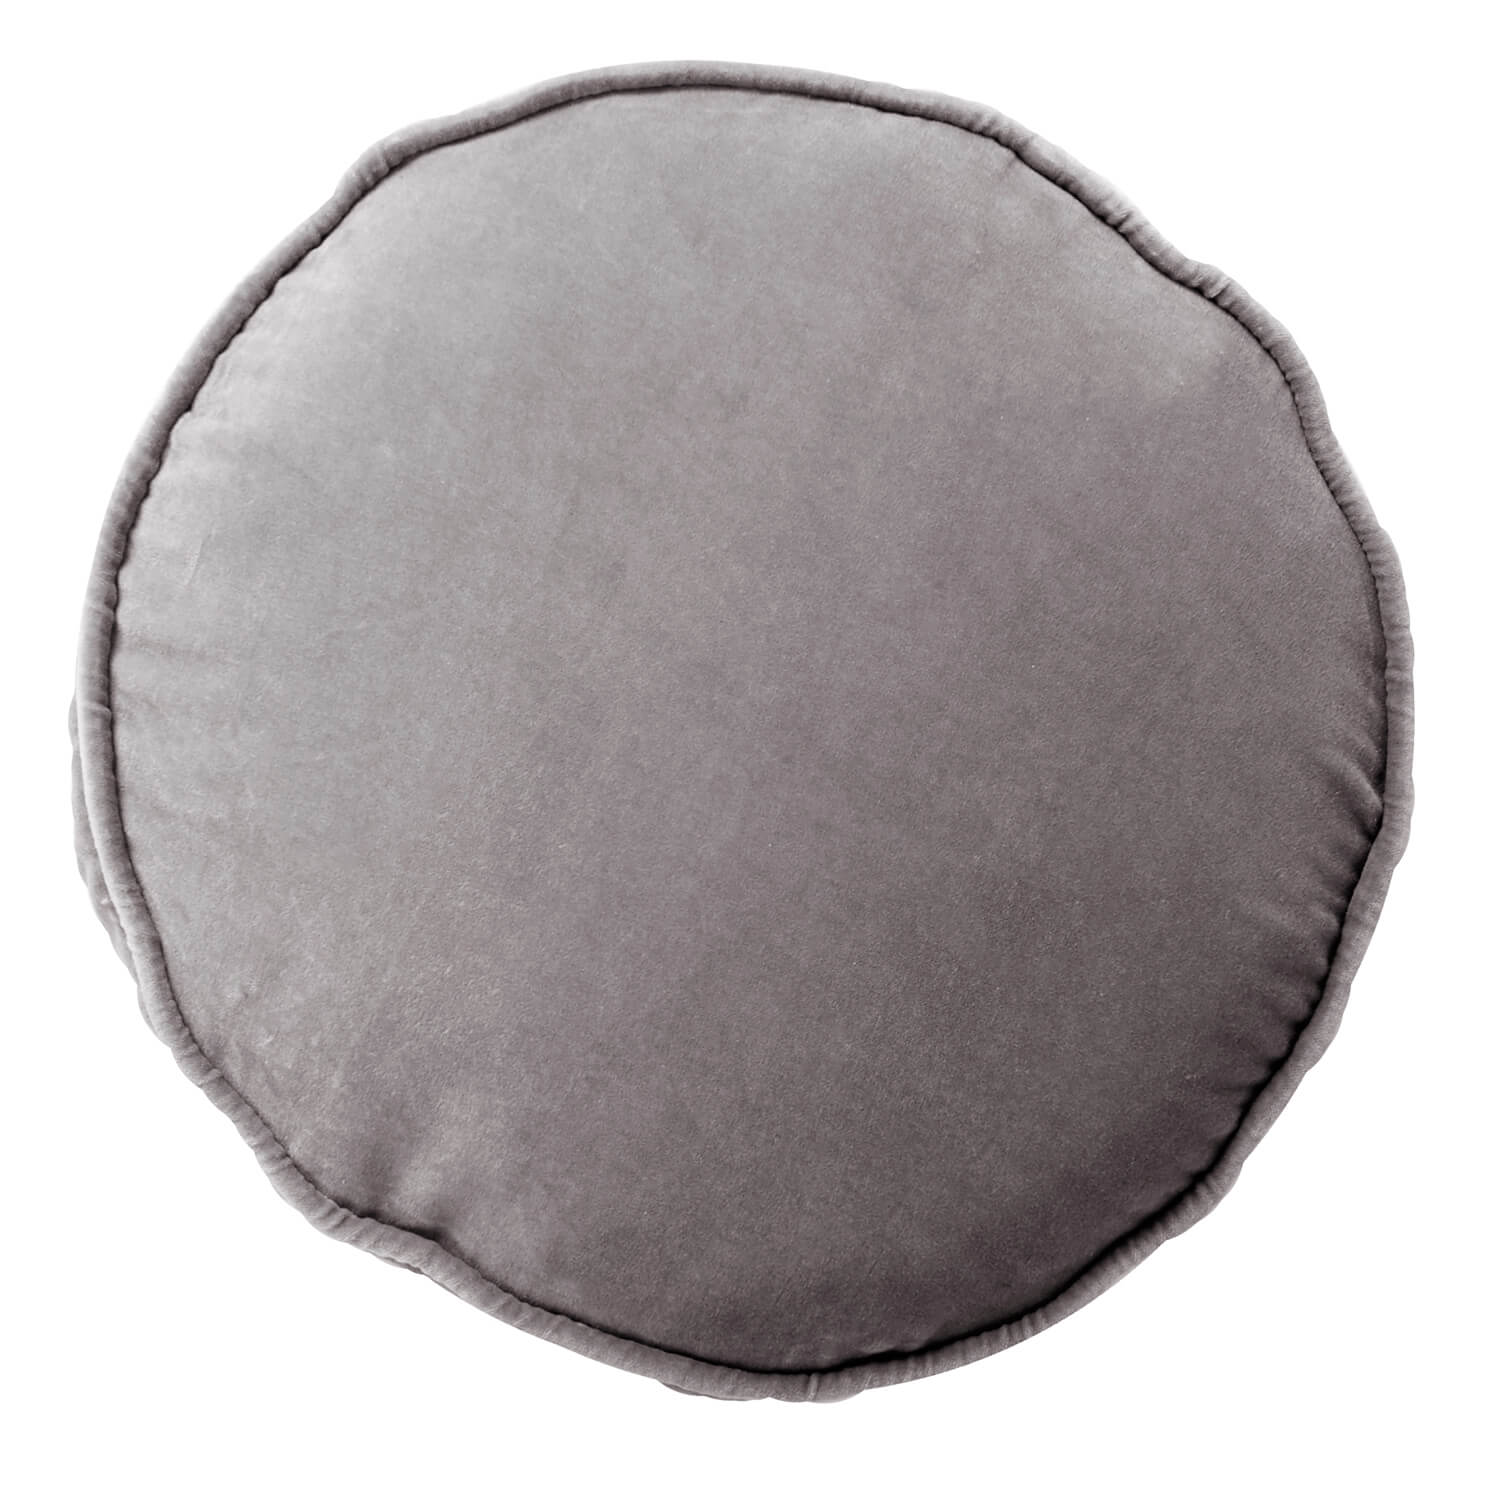 Kip and co storm front velvet pea cushion - Homewares - $89 |My House Loves